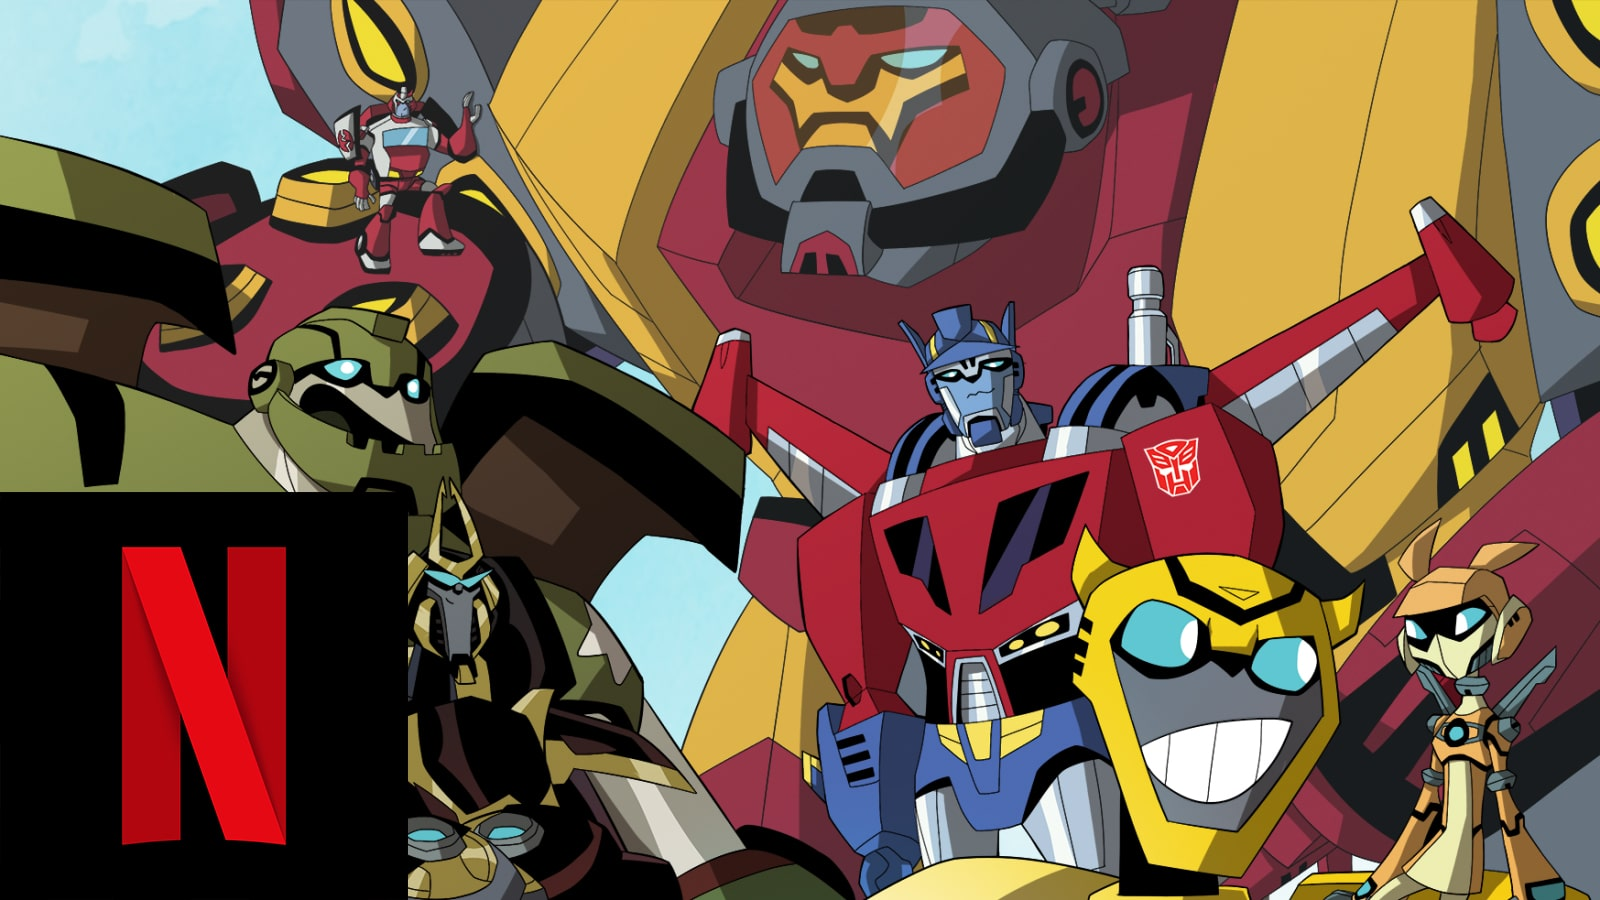 Transformers animated series to debut on netflix soon animated times